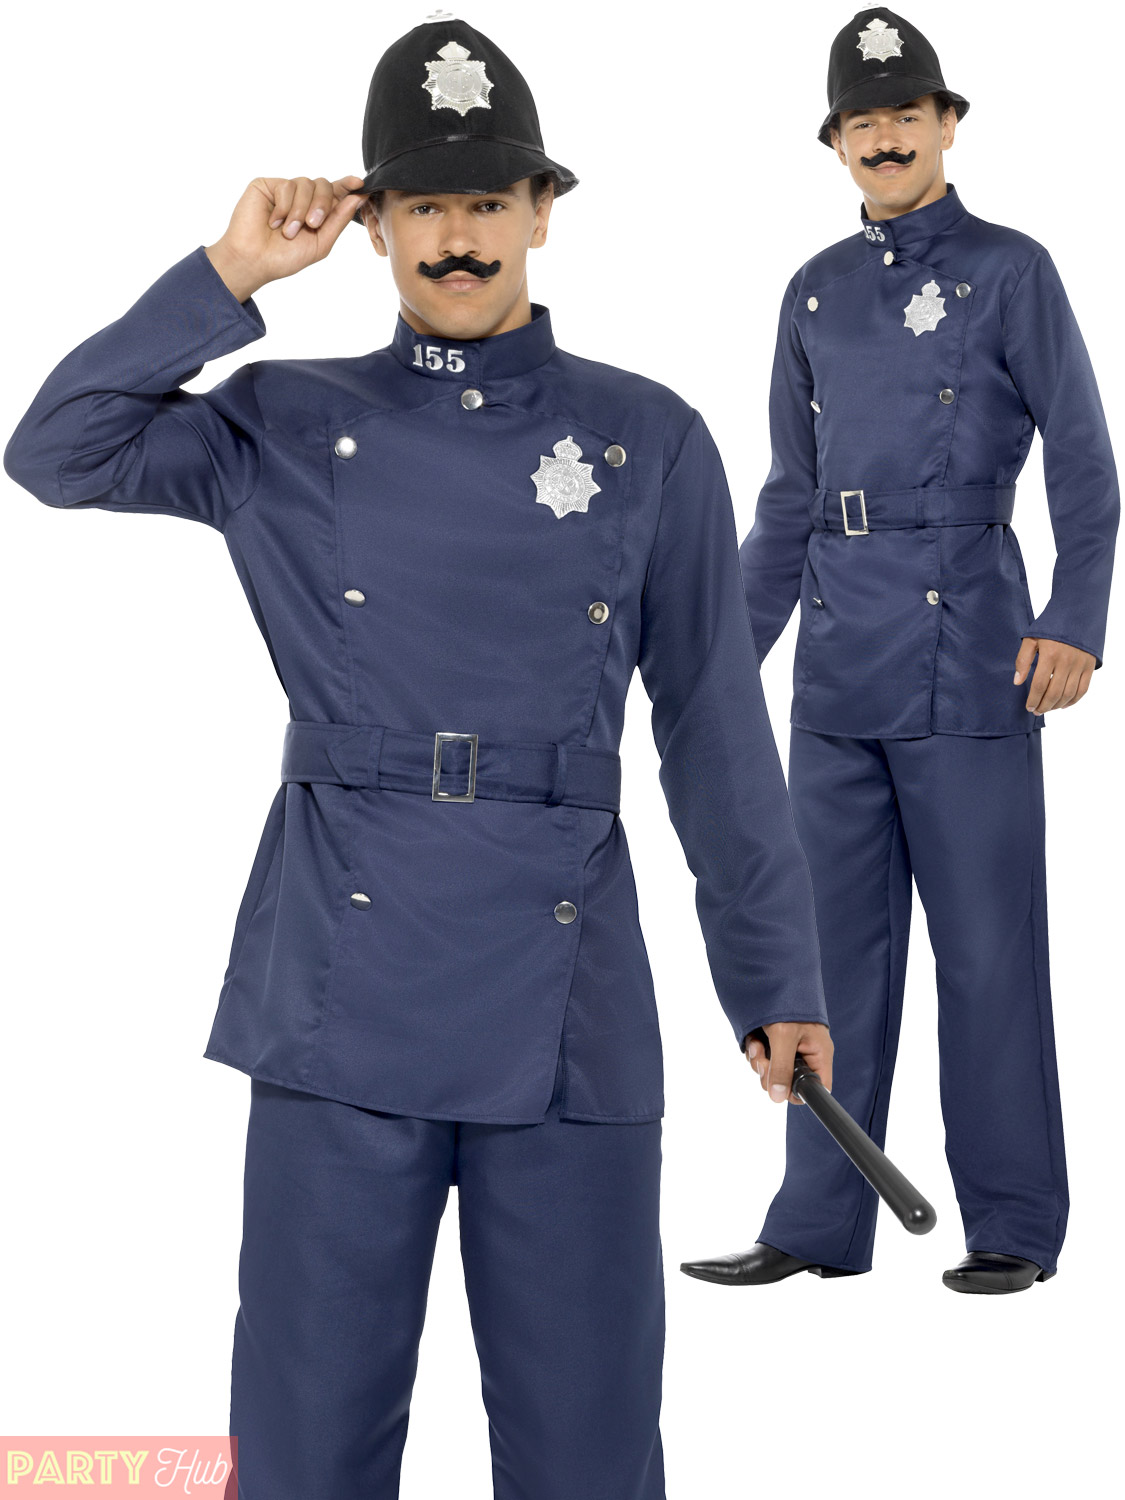 Speaking, adult policeman costume consider